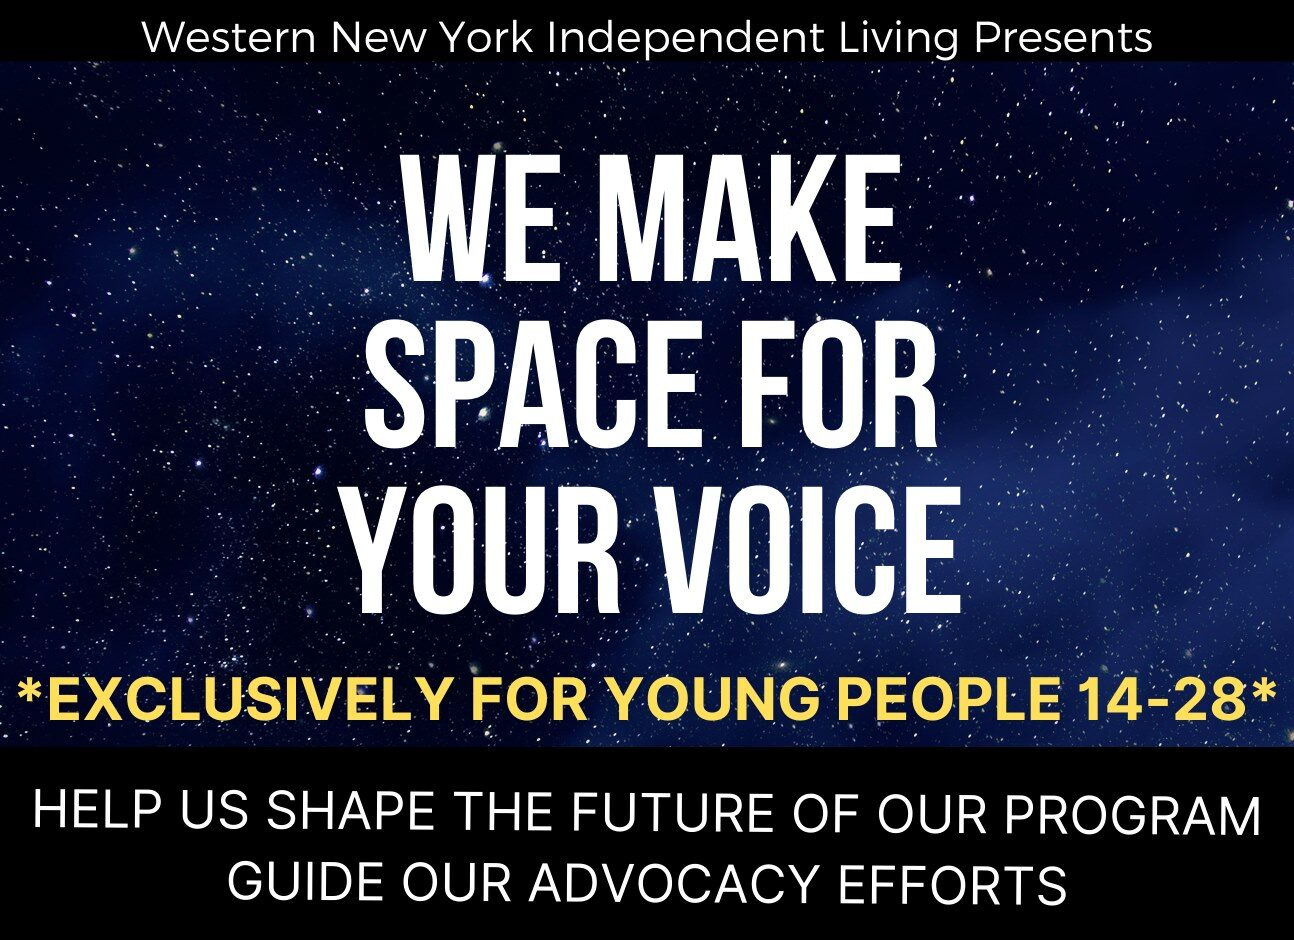 WNYIL Presents We Make Space For Your Voice. Exclusively for young people 14-28. Help us shape the future of our program and guide our advocacy efforts.